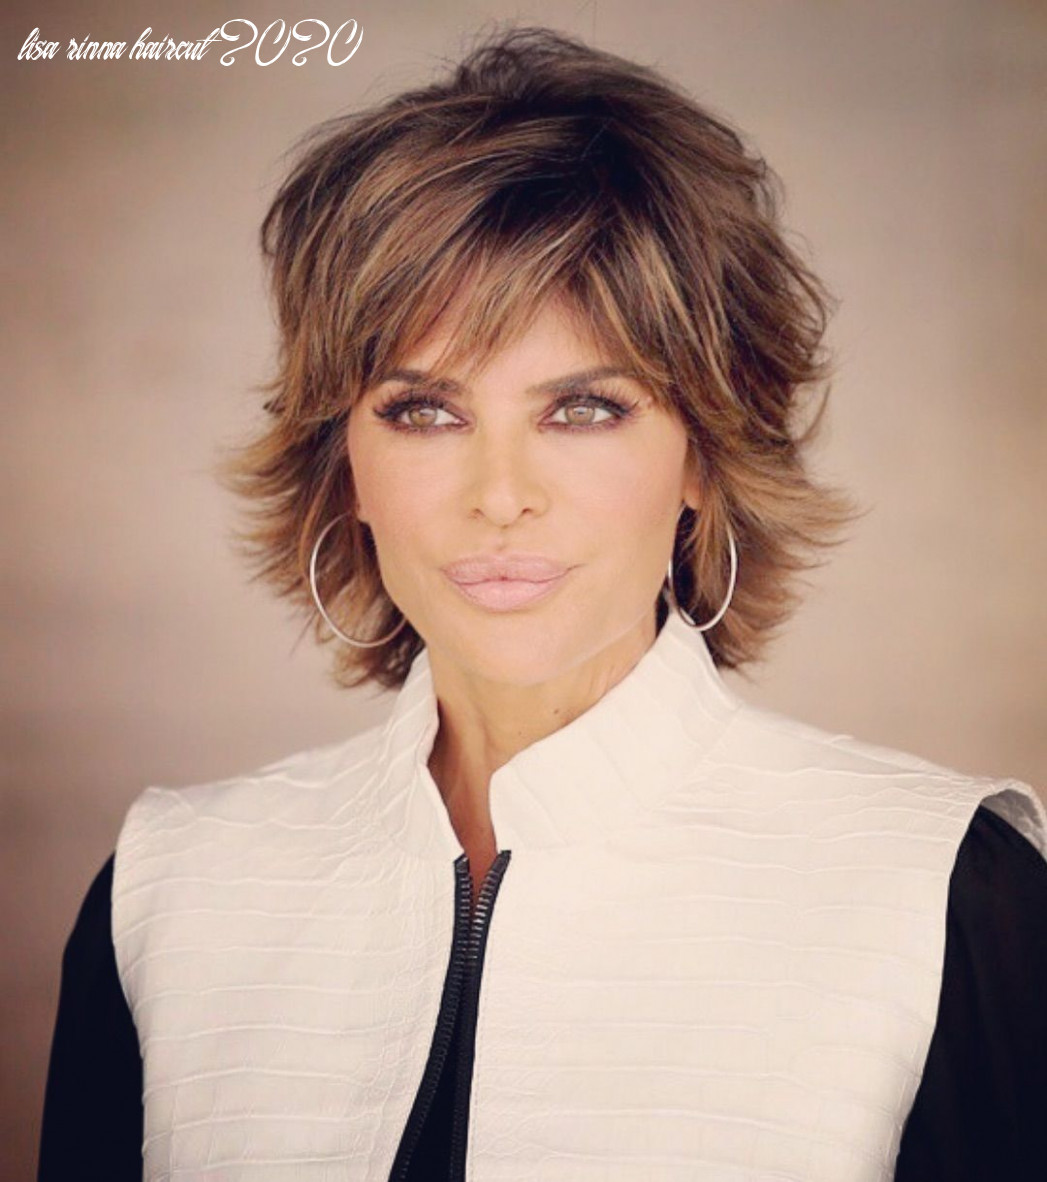 "Lisa rinna on instagram: "" in 12 